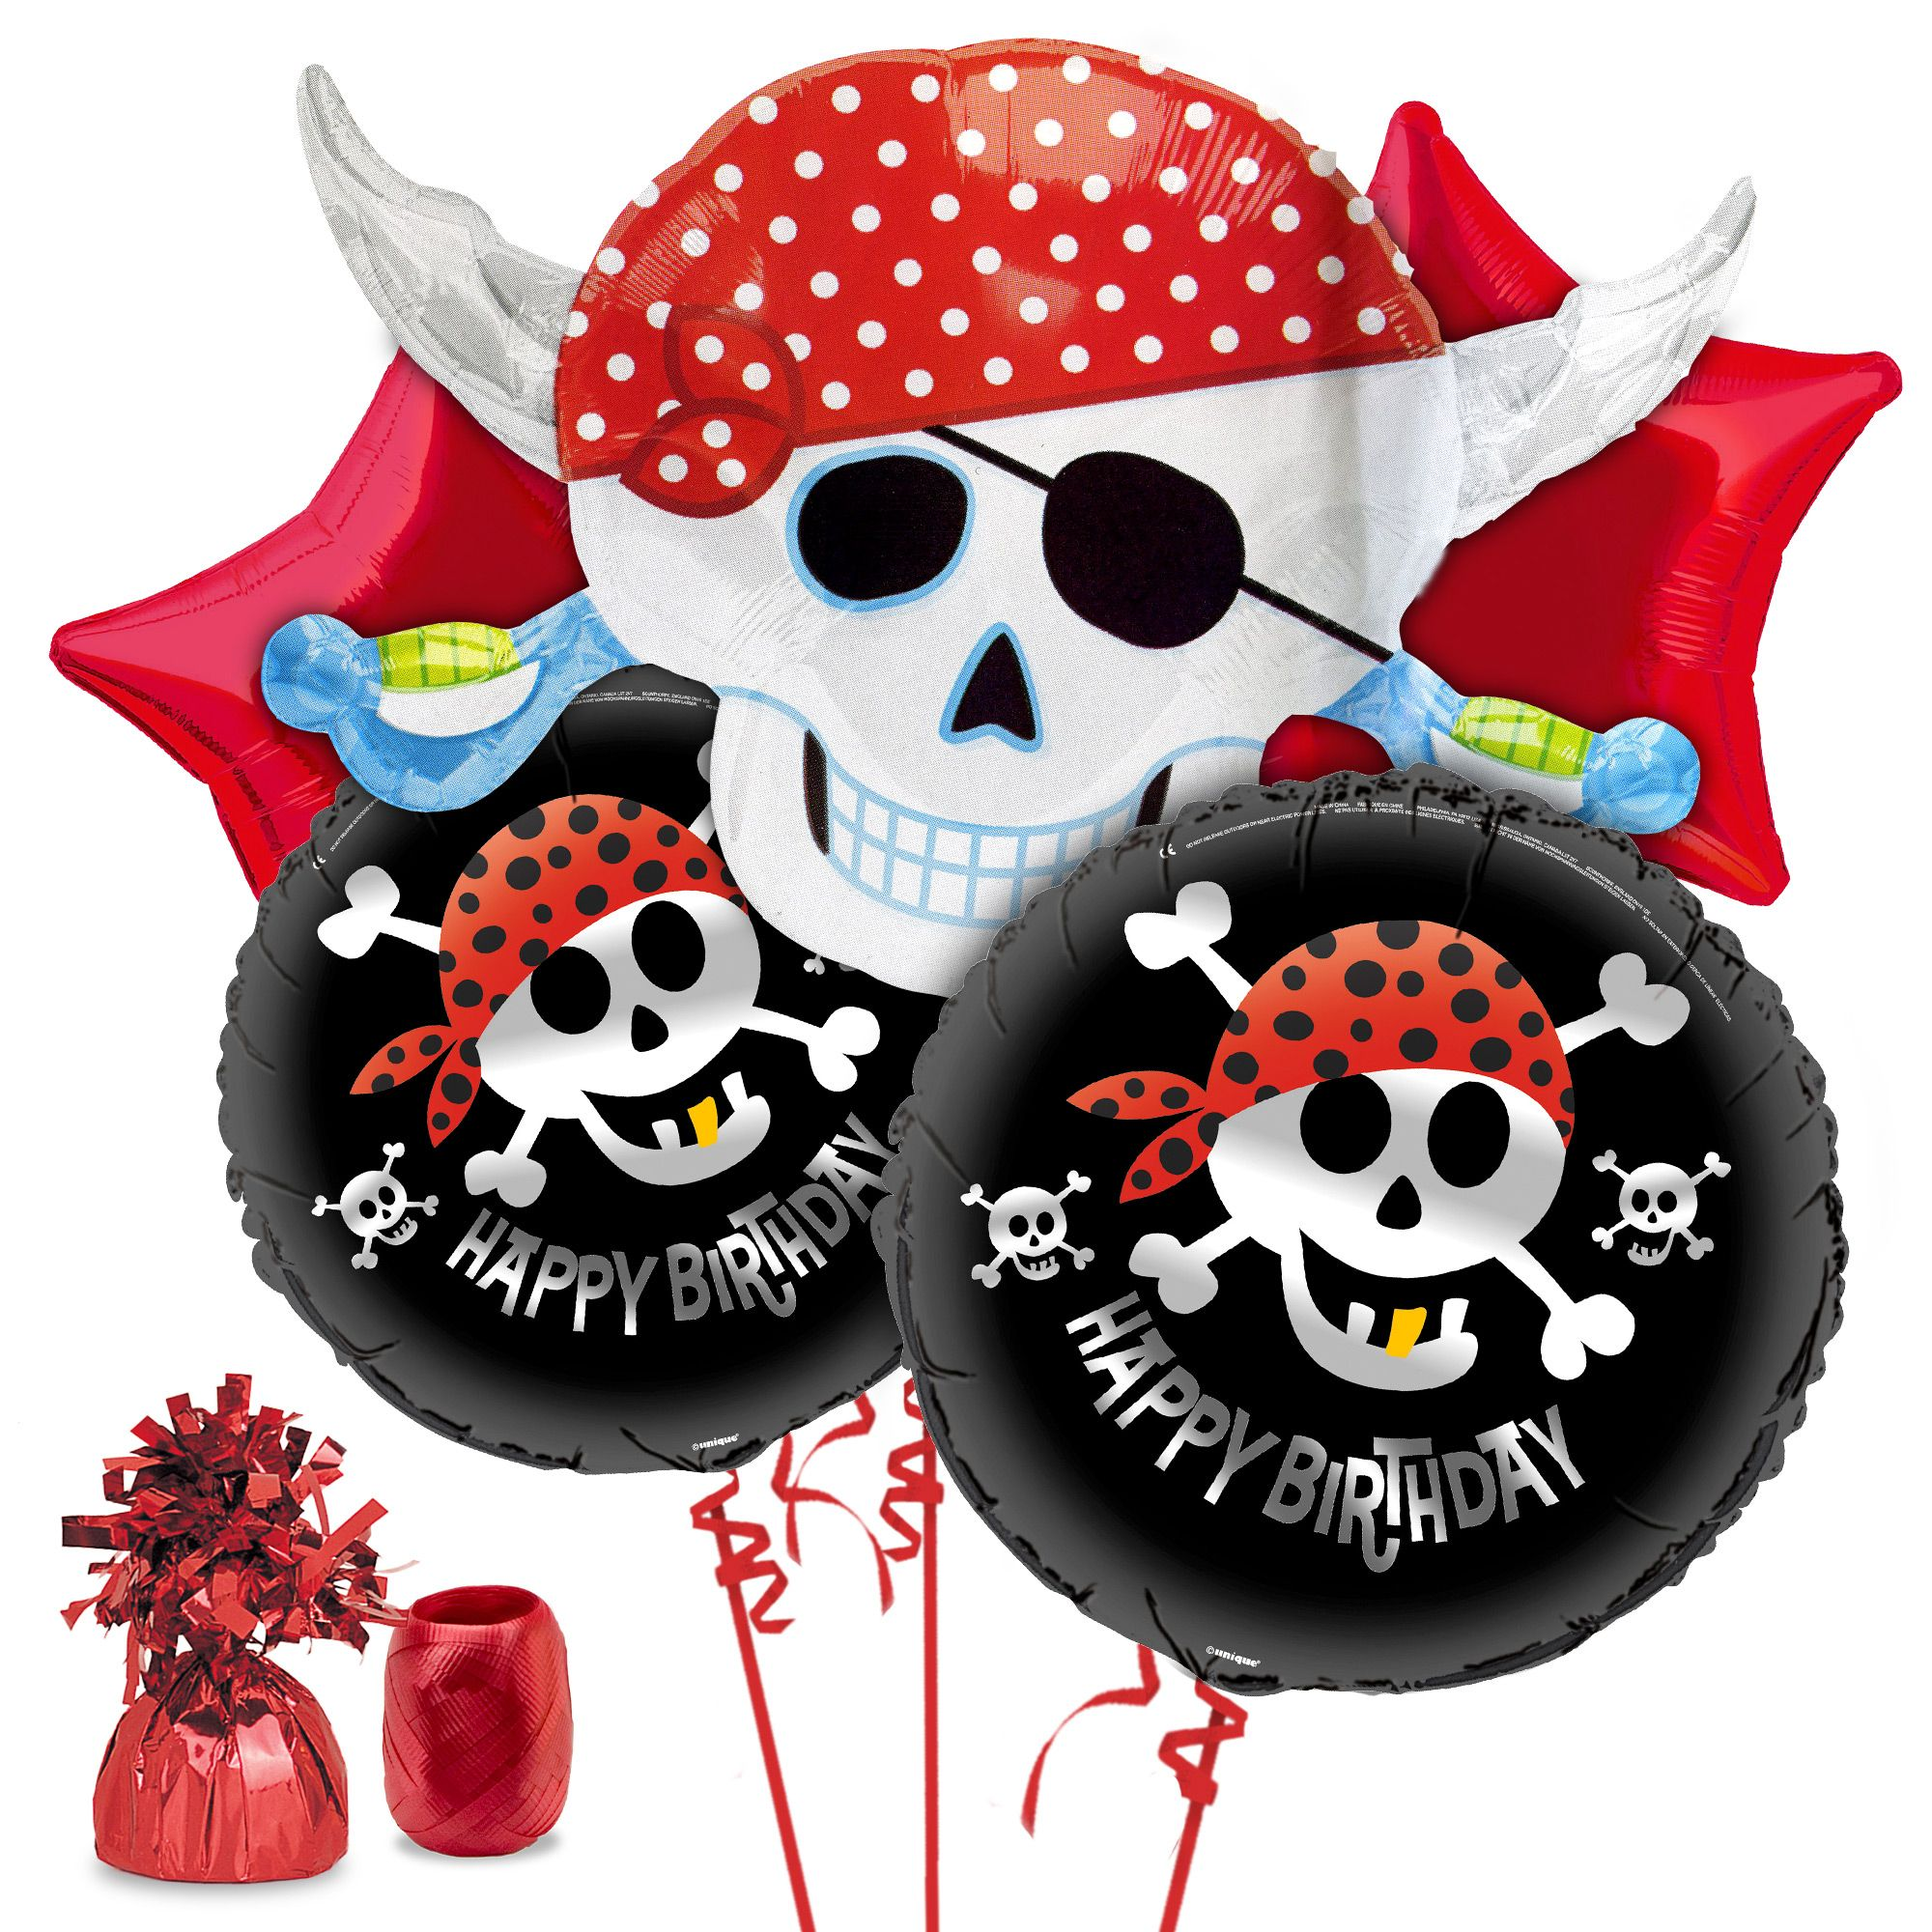 Pirate Birthday Balloon Kit - Party Supplies